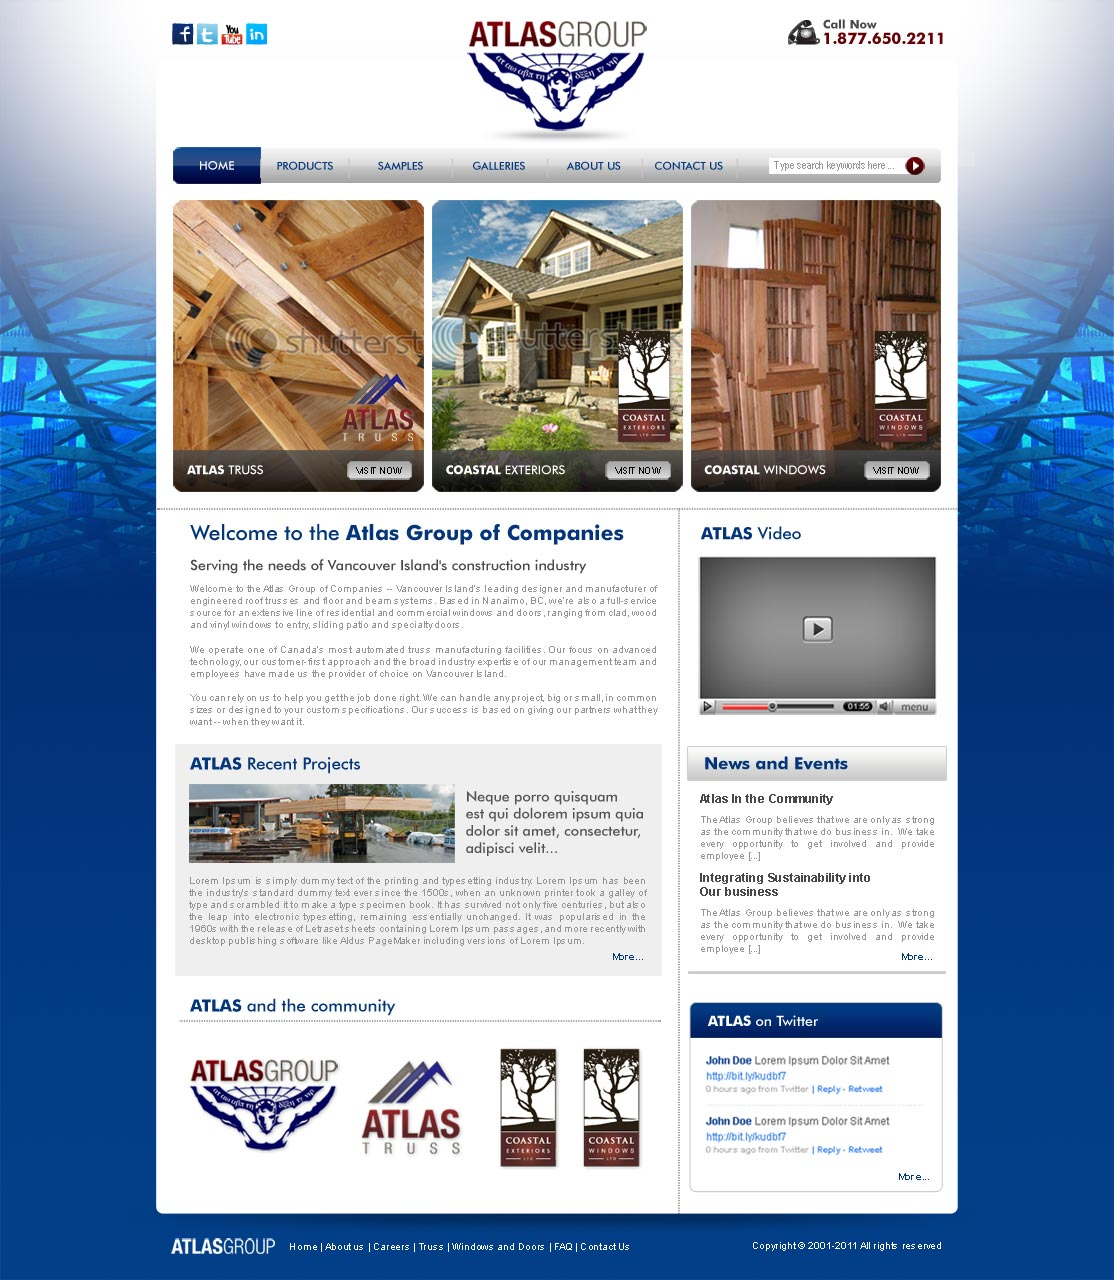 Web Page Design by ArsalanHanif - Entry No. 14 in the Web Page Design Contest The Atlas Group Website.